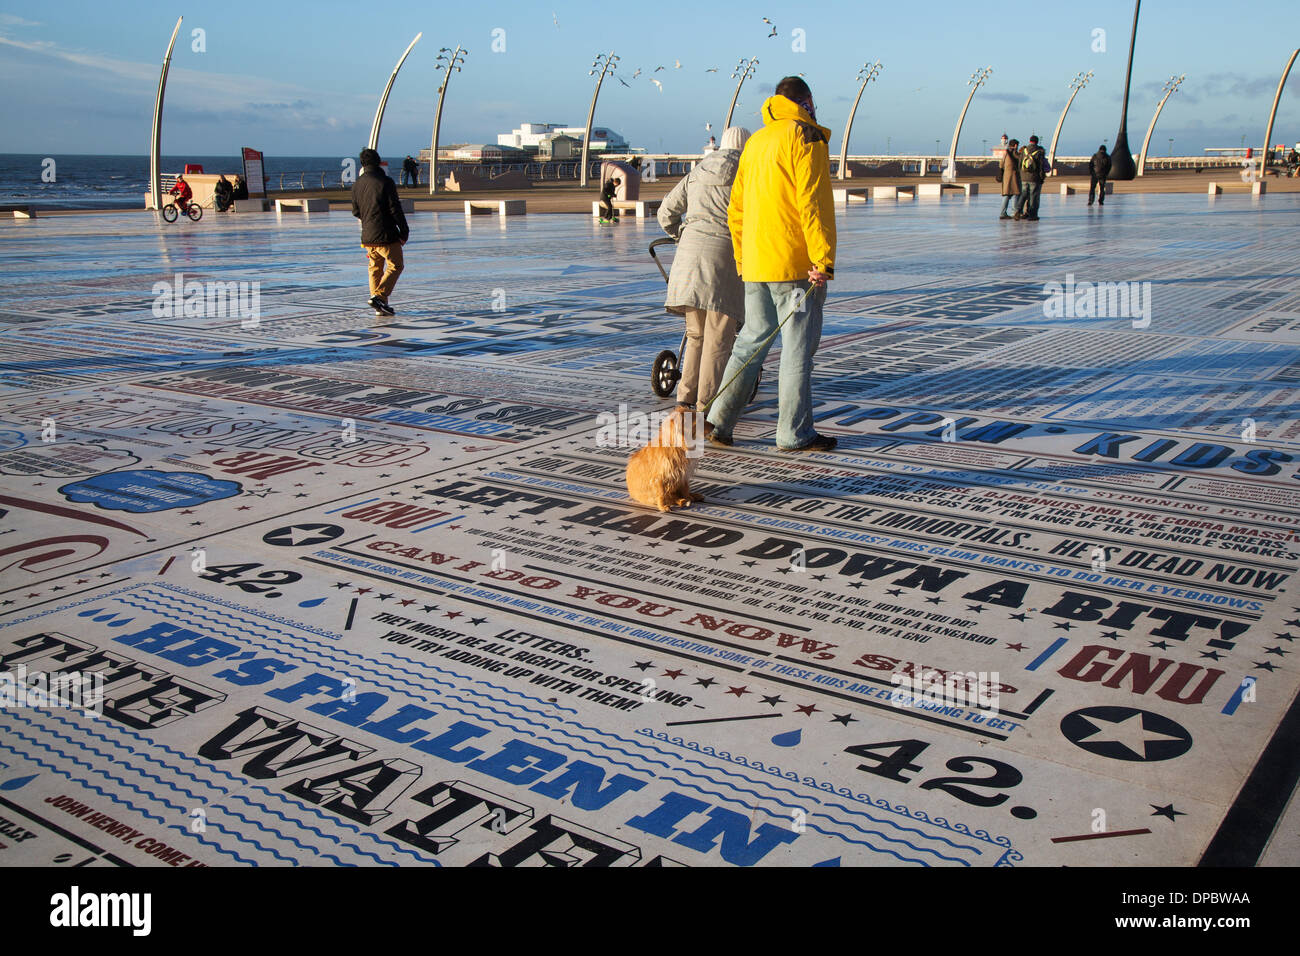 Blackpool, Lancashire, UK 11th Jan, 2014. 'The Navy lark' Holidaymakers enjoying the humour and catch phrases embossed in the Comedy Pavement on Blackpool's Promenade. A celebration of comedy on an extraordinary scale. Referring to the work of more than 1,000 comedians and comedy writers, the carpet gives visual form to jokes, songs and catchphrases dating from the early days of variety to the present. The 2,200m2 work of art contains over 160,000 granite letters embedded into concrete, pushing the boundaries of public art and typography to their limits. Credit:  Mar Photographics/Alamy Live N - Stock Image